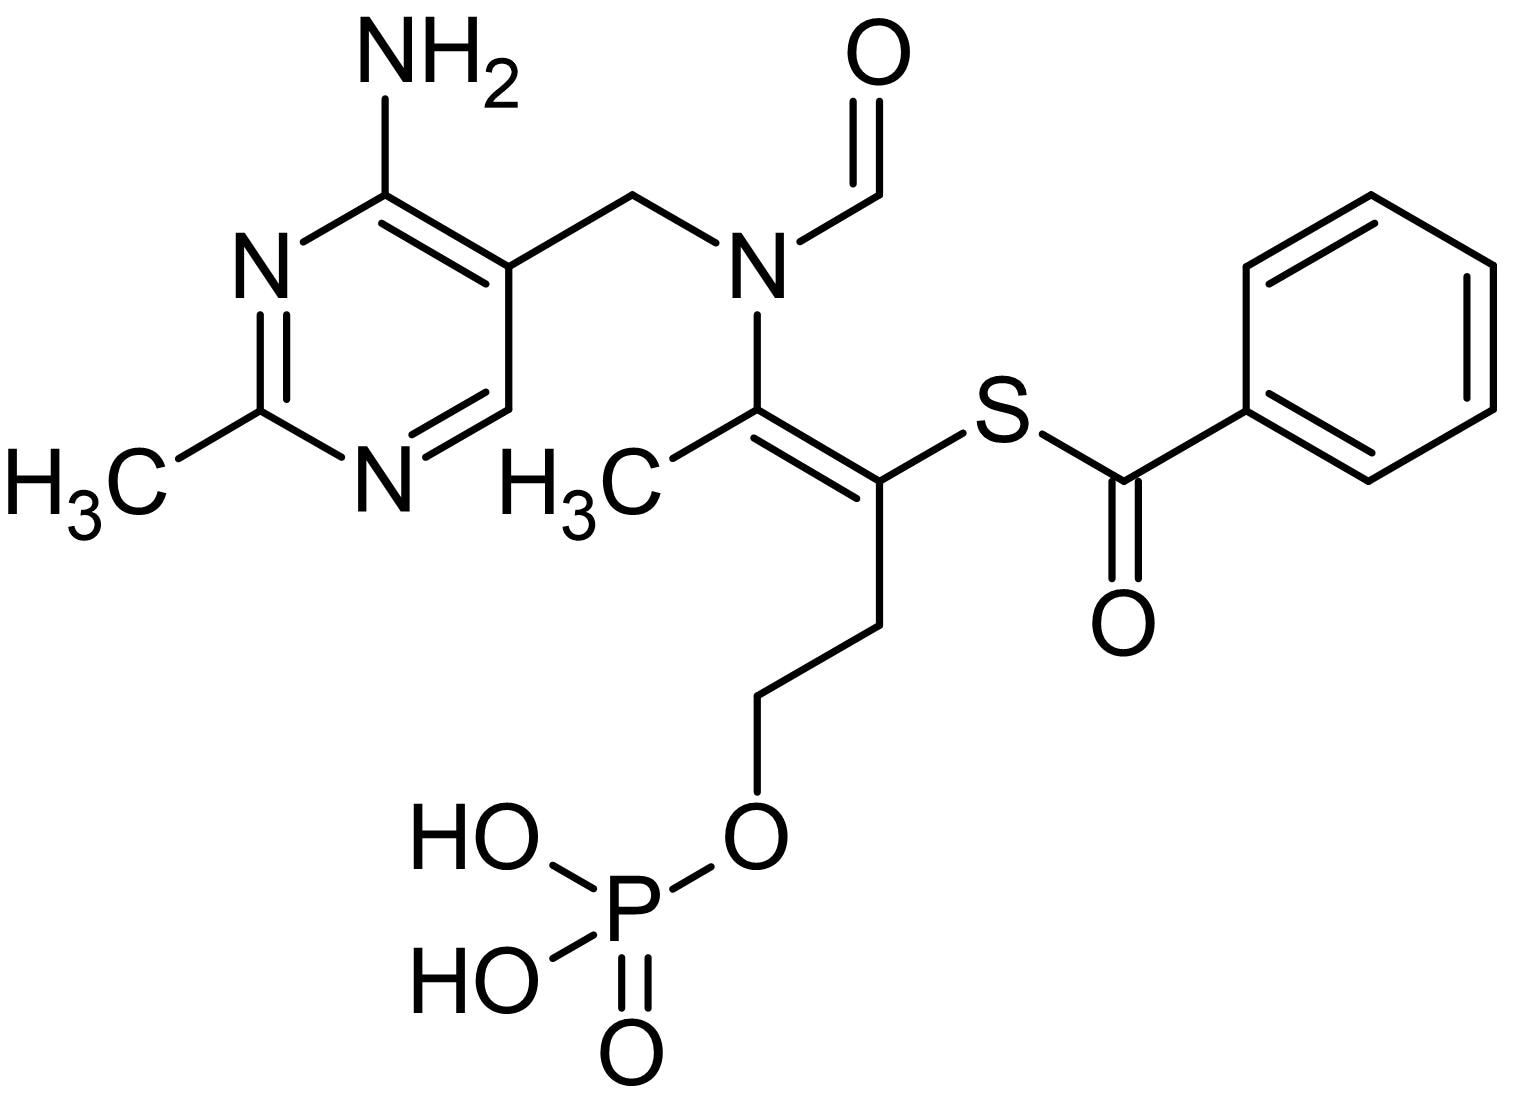 Chemical Structure - Benfotiamine, vitamin B1 analogue (ab142831)